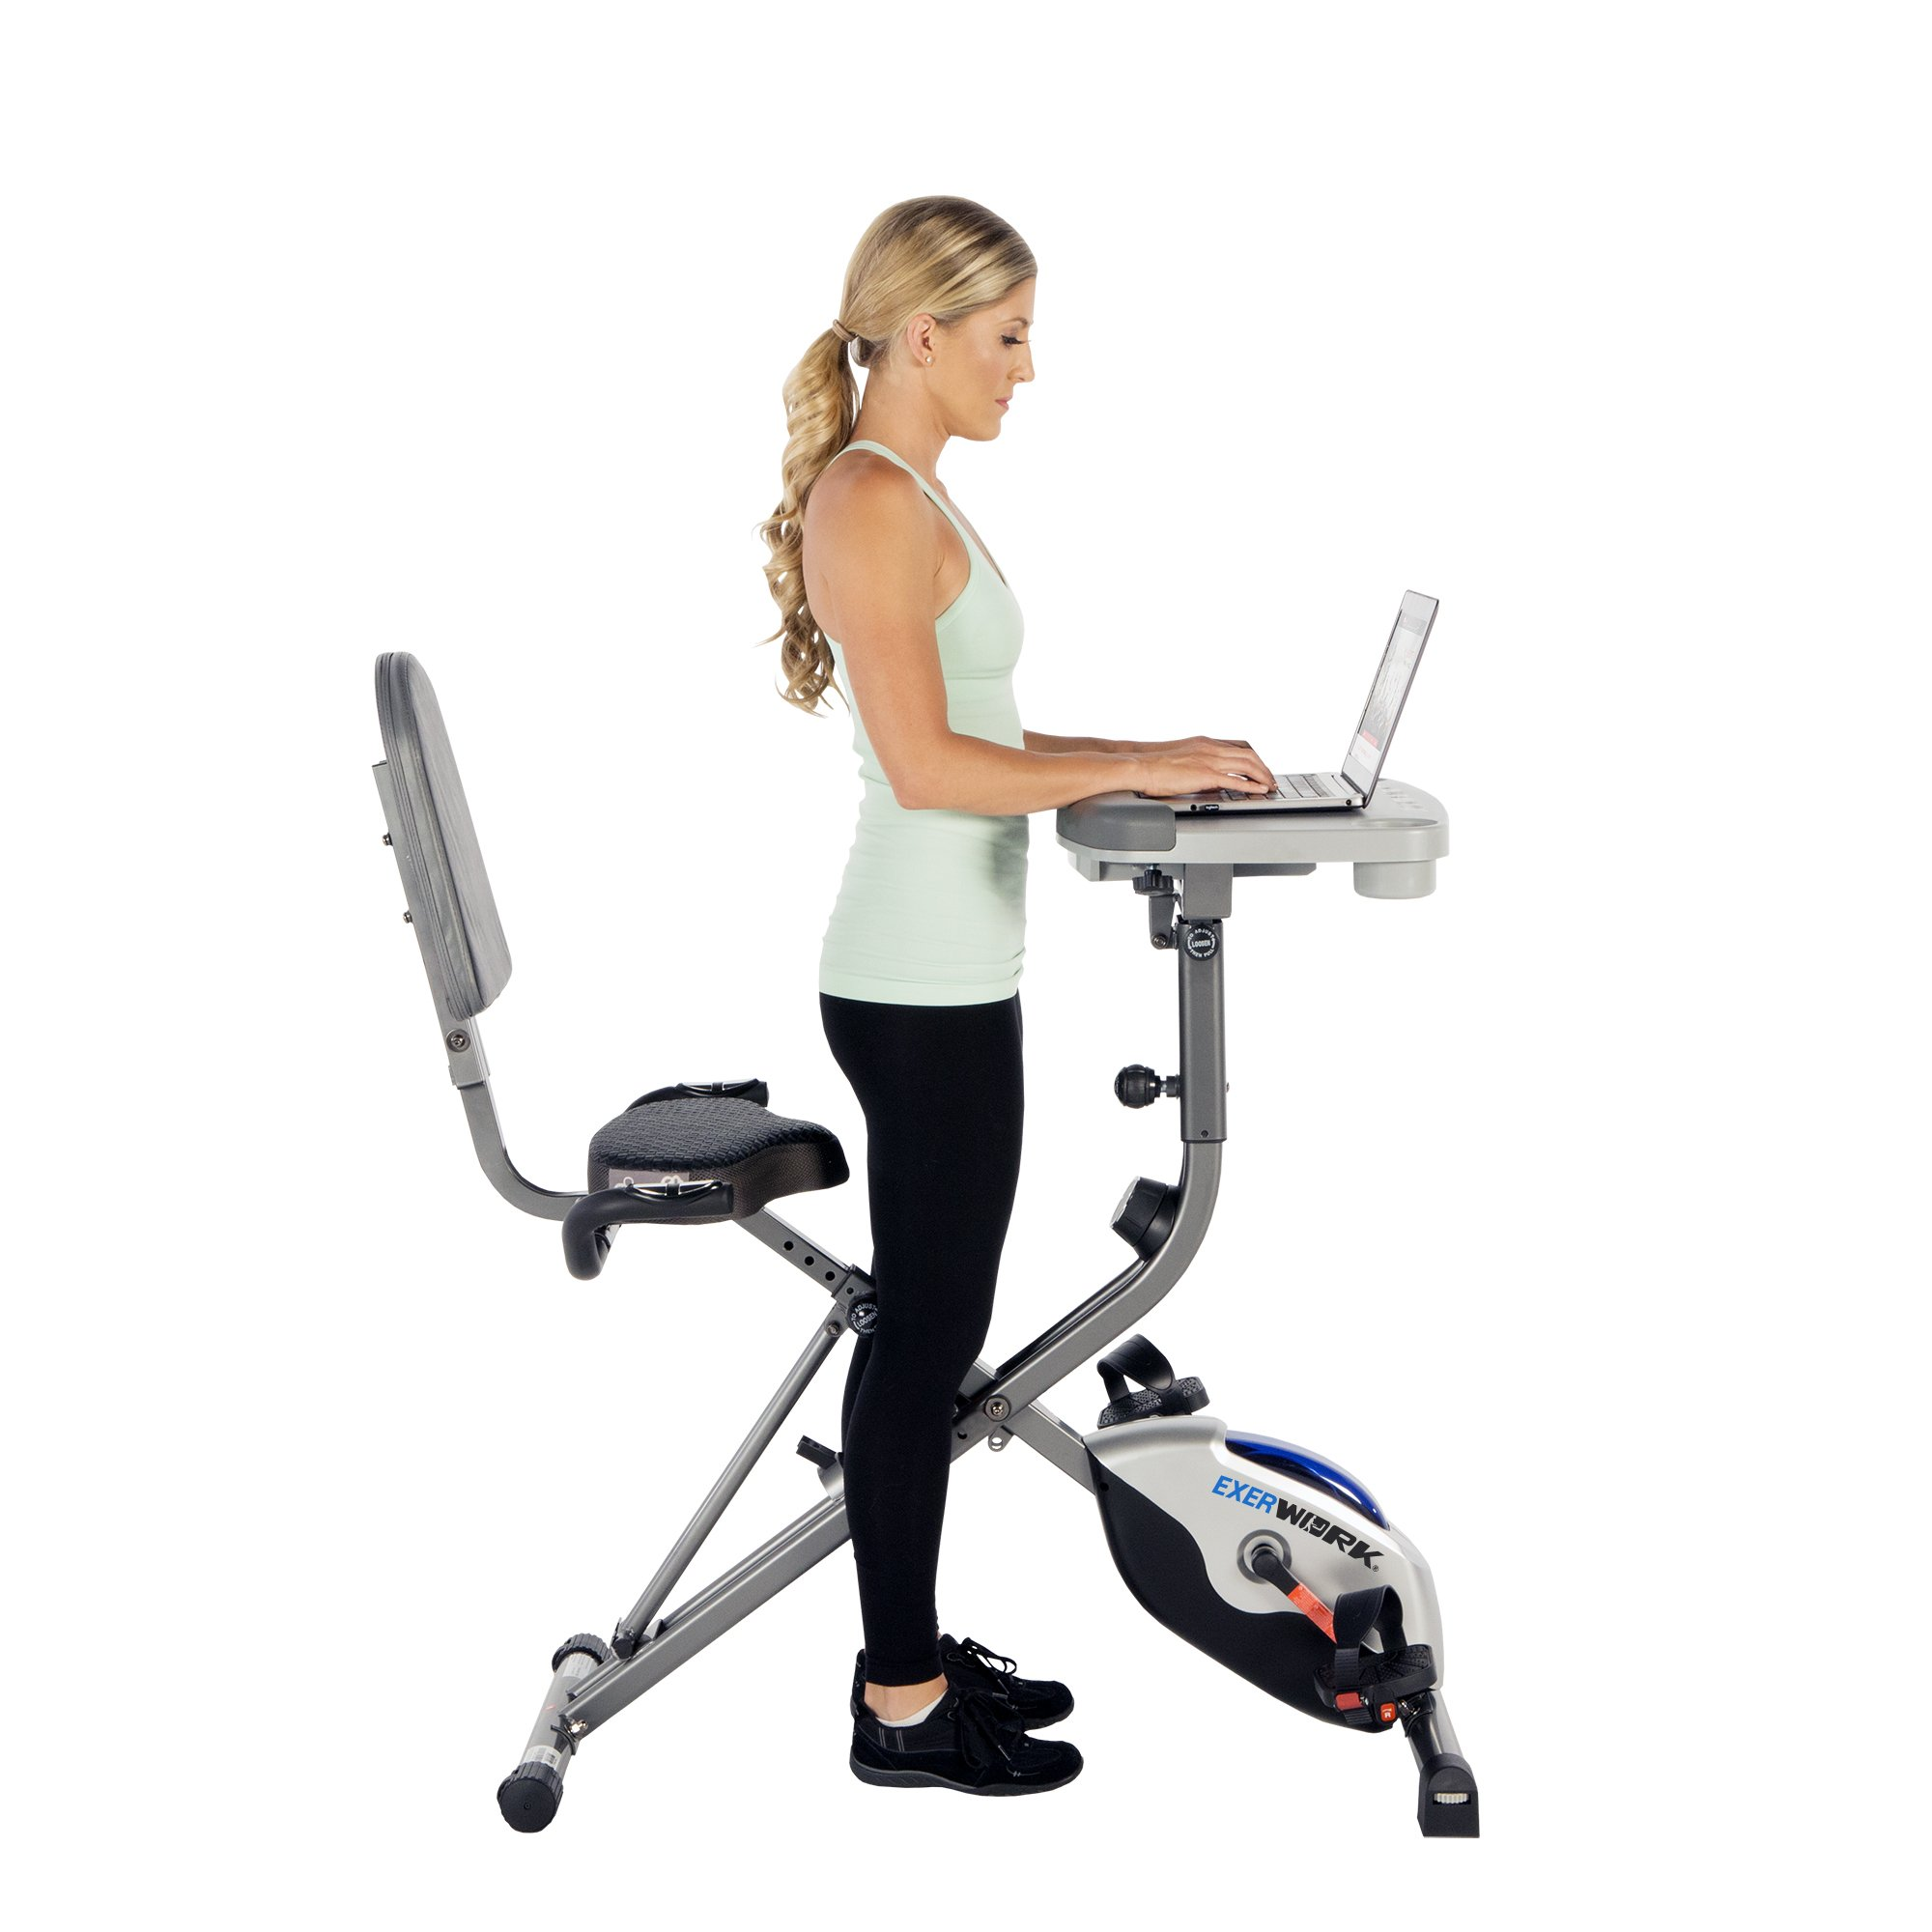 Exerpeutic ExerWorK 1000 Fully Adjustable Desk Folding Exercise Bike with Pulse by Exerpeutic (Image #6)